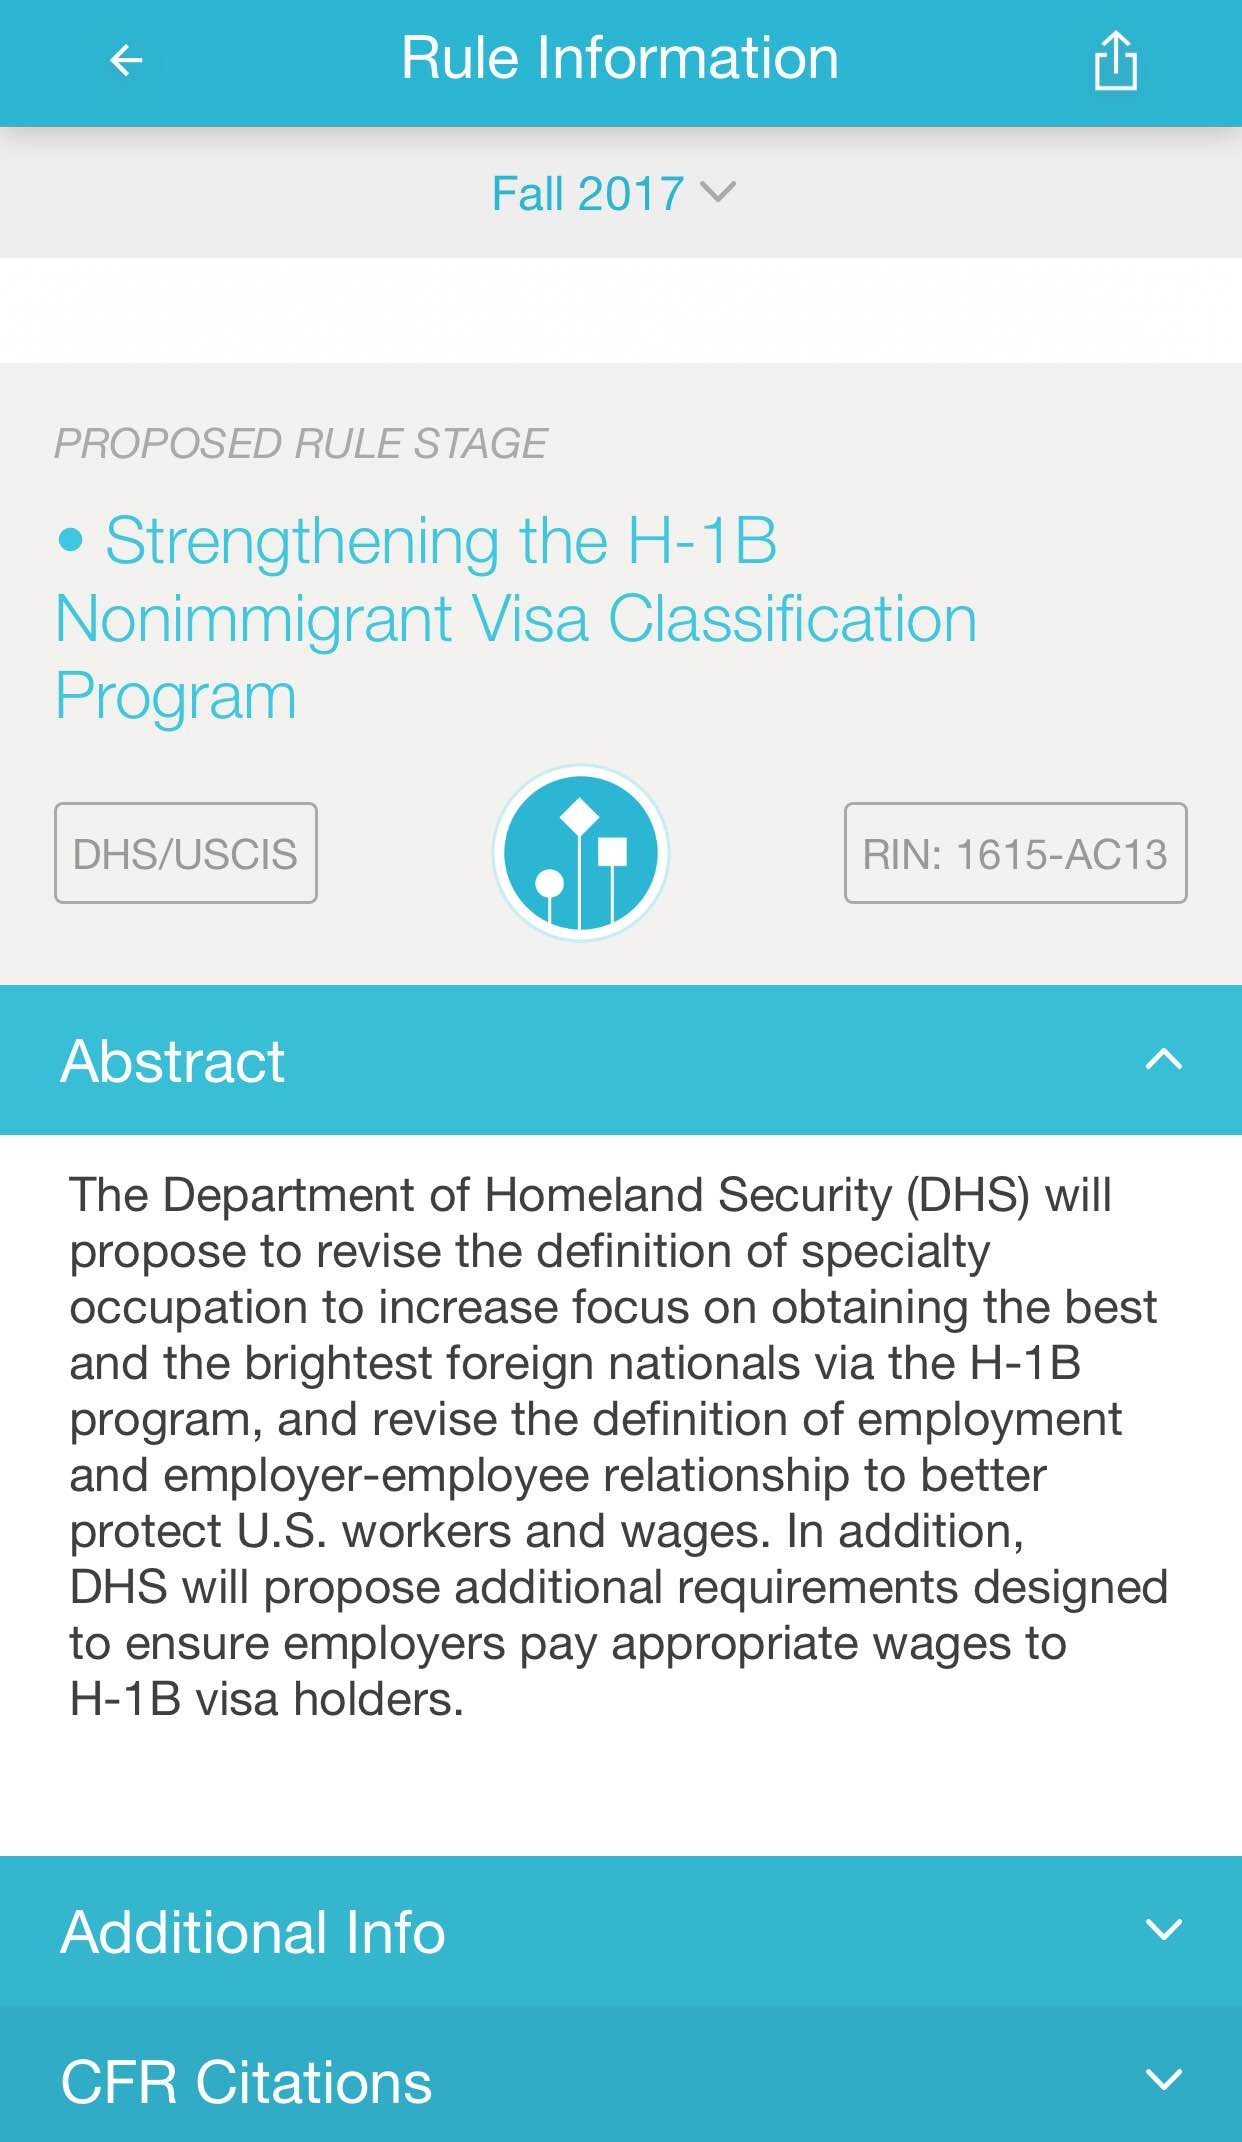 Work VISA: Can DHS remove current H1B occupations so that